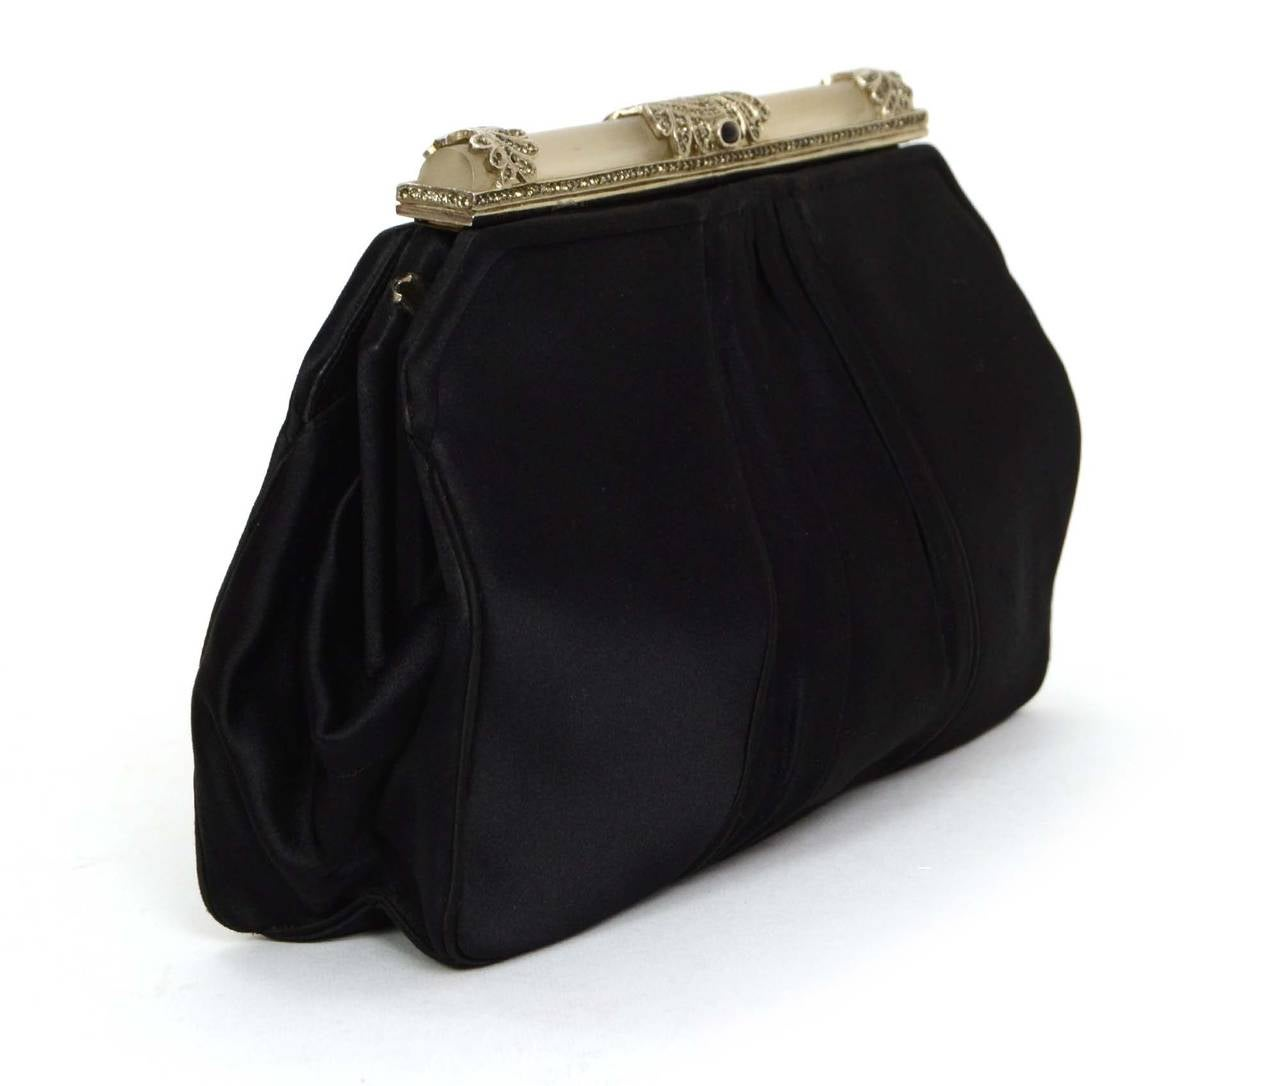 Judith Leiber Black Satin Art Deco Evening Bag